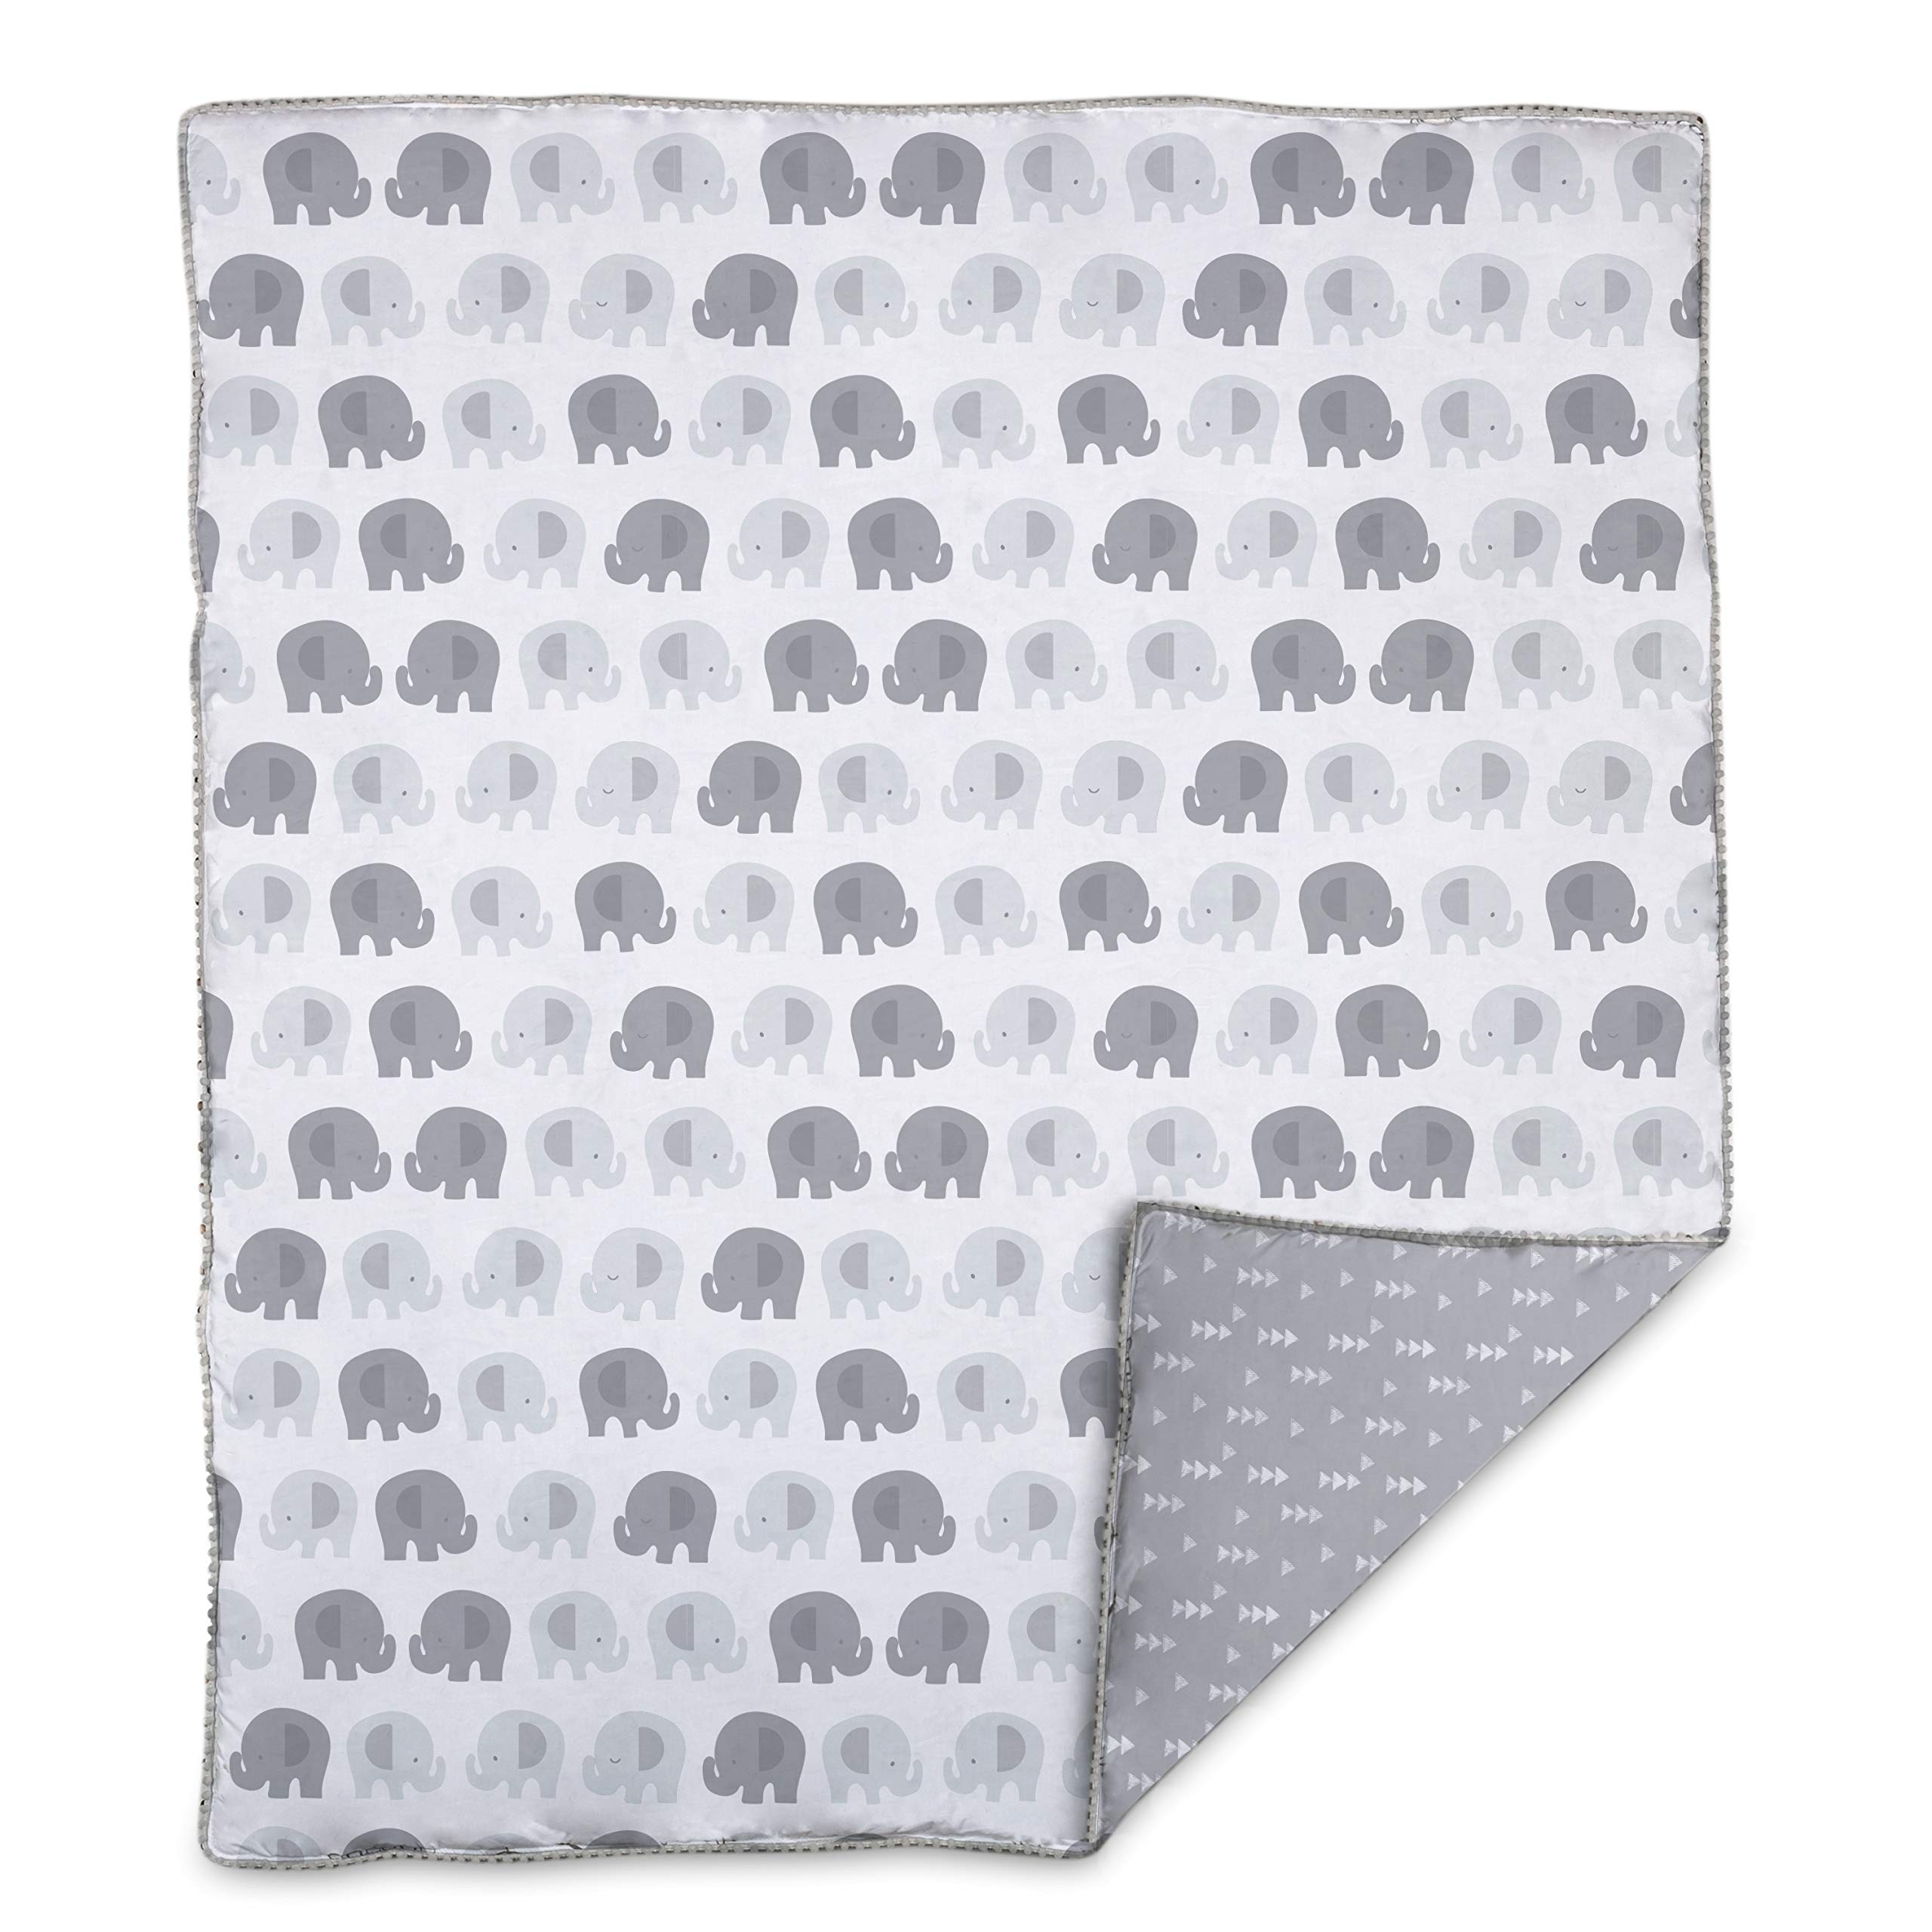 Lolli by Lolli Living Baby Comforter in Bailey Elephant Print. 100% Cotton Modern Baby Blanket (50x40 inch)